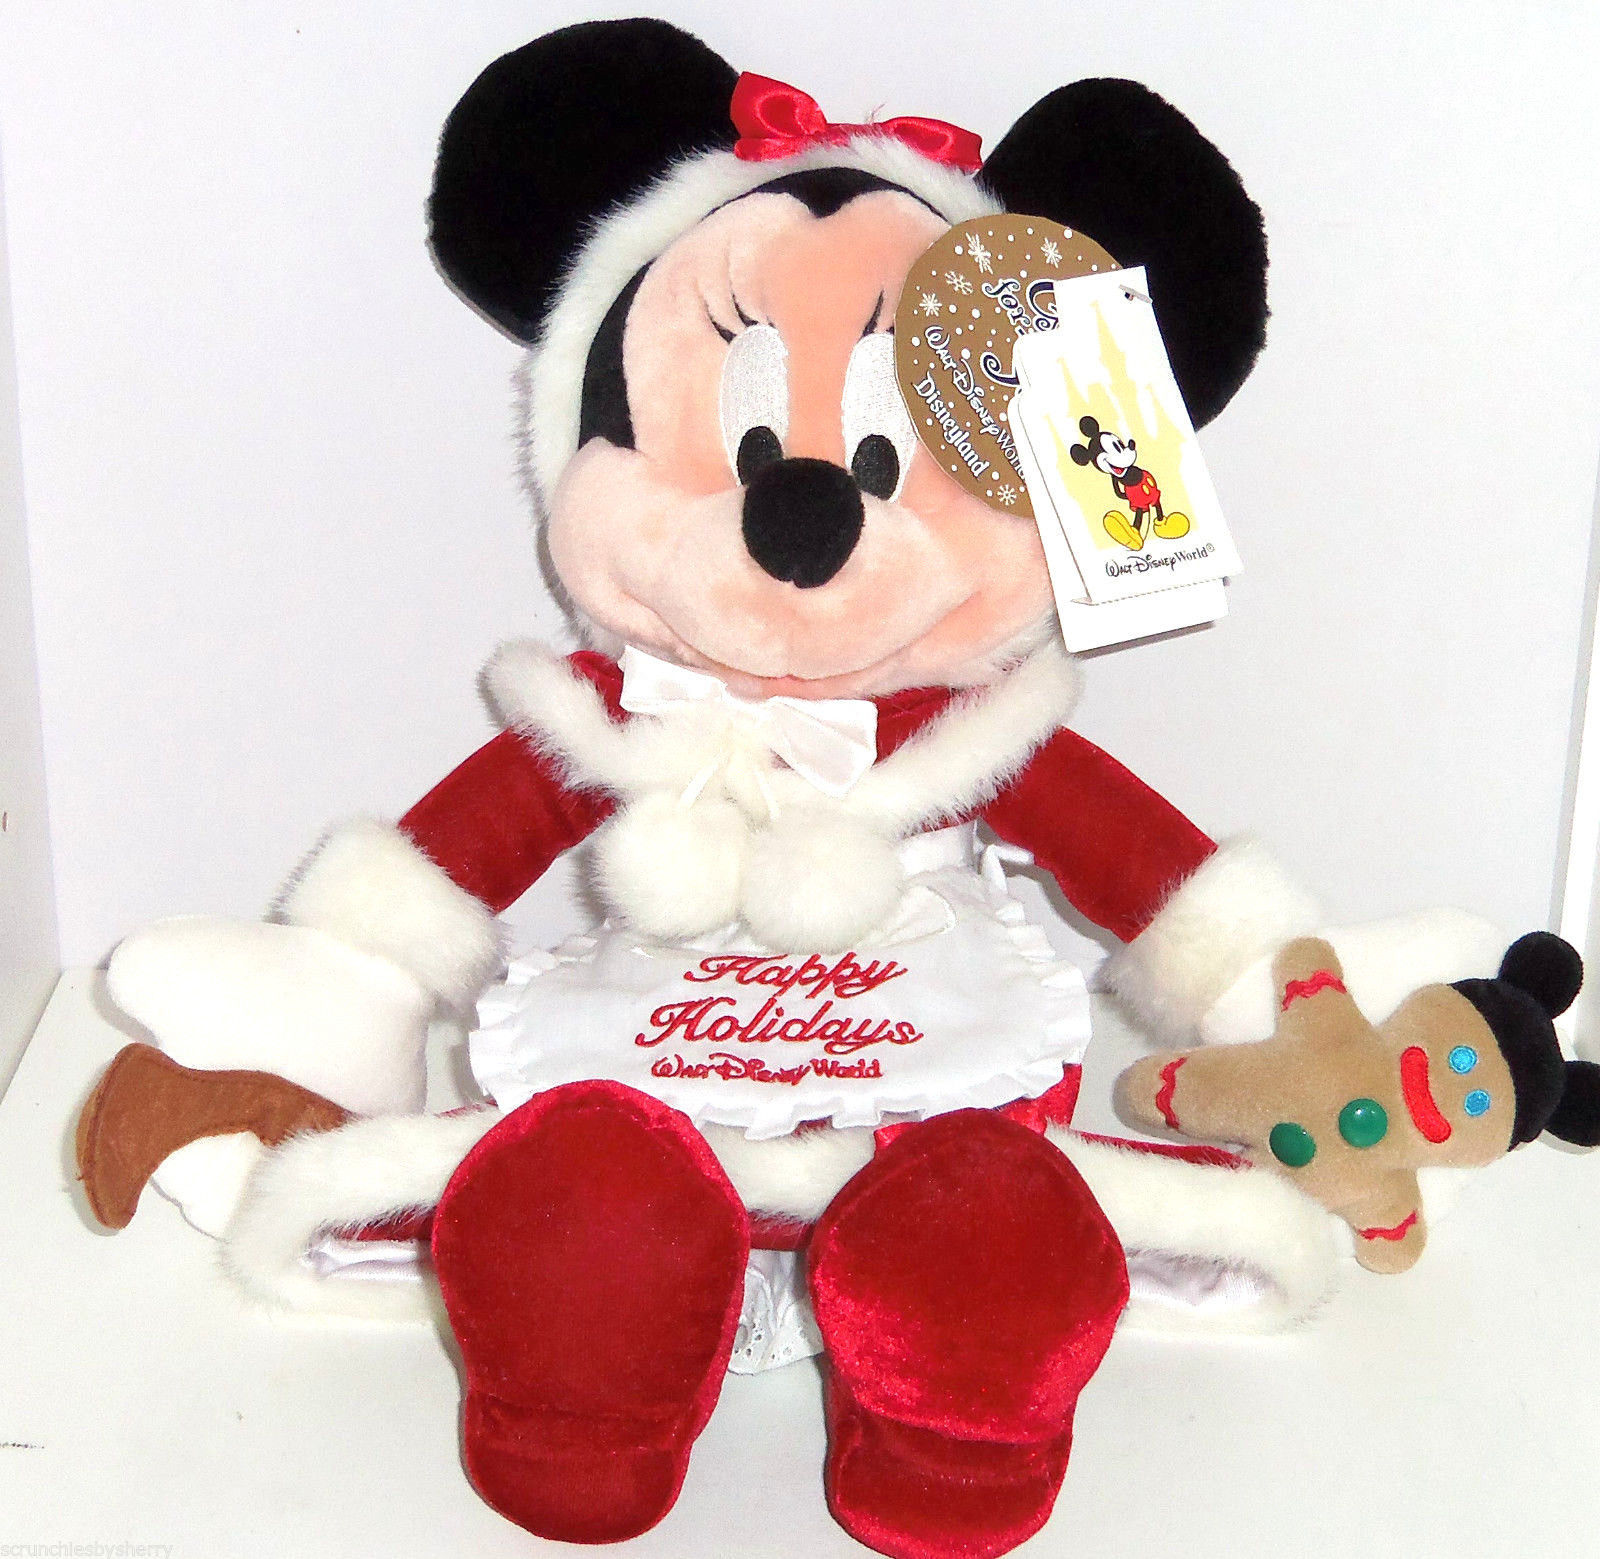 Christmas Toys Disney : Walt disney world minnie mouse plush mrs claus christmas